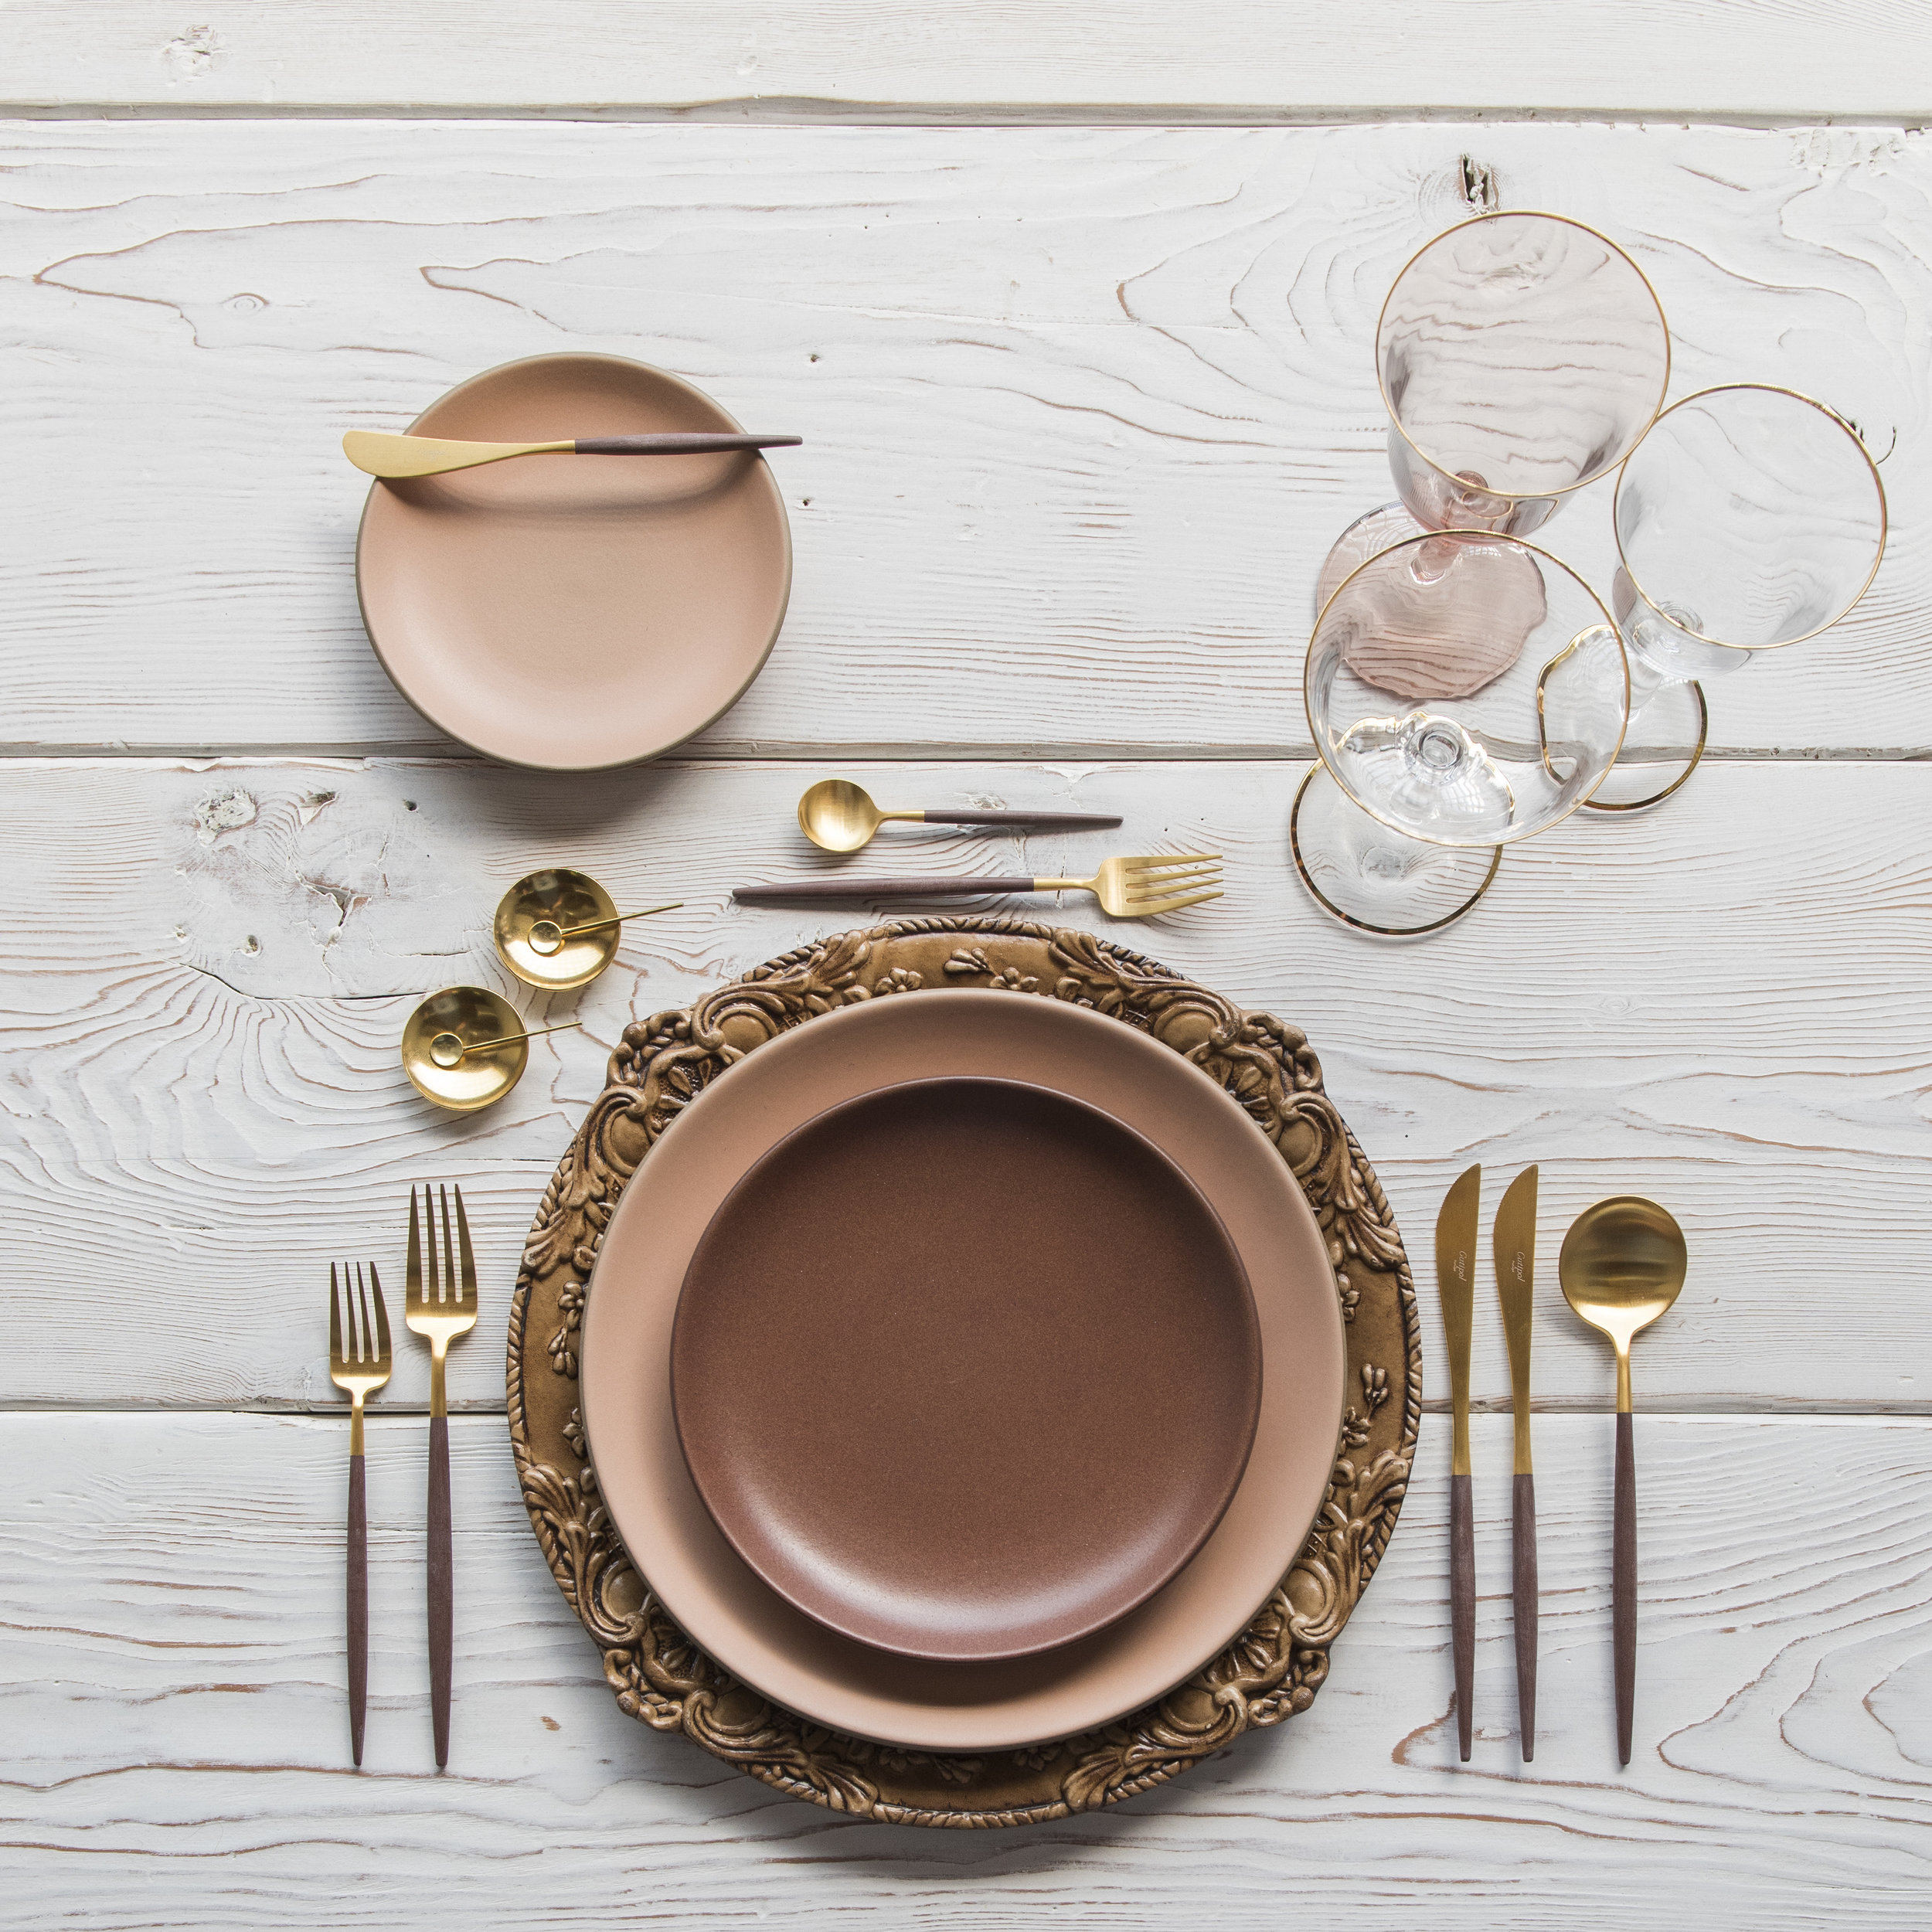 RENT: Verona Chargers in Walnut + Custom Heath Ceramics in Sunrise/Redwood + Goa Flatware in Brushed 24k Gold/Wood + Chloe 24k Gold Rimmed Stemware + Chloe 24k Gold Rimmed Goblet in Blush + 14k Gold Salt Cellars + Tiny Gold Spoons   SHOP: Verona Chargers in Walnut + Goa Flatware in Brushed 24k Gold/Wood + Chloe 24k Gold Rimmed Stemware + 14k Gold Salt Cellars + Tiny Gold Spoons